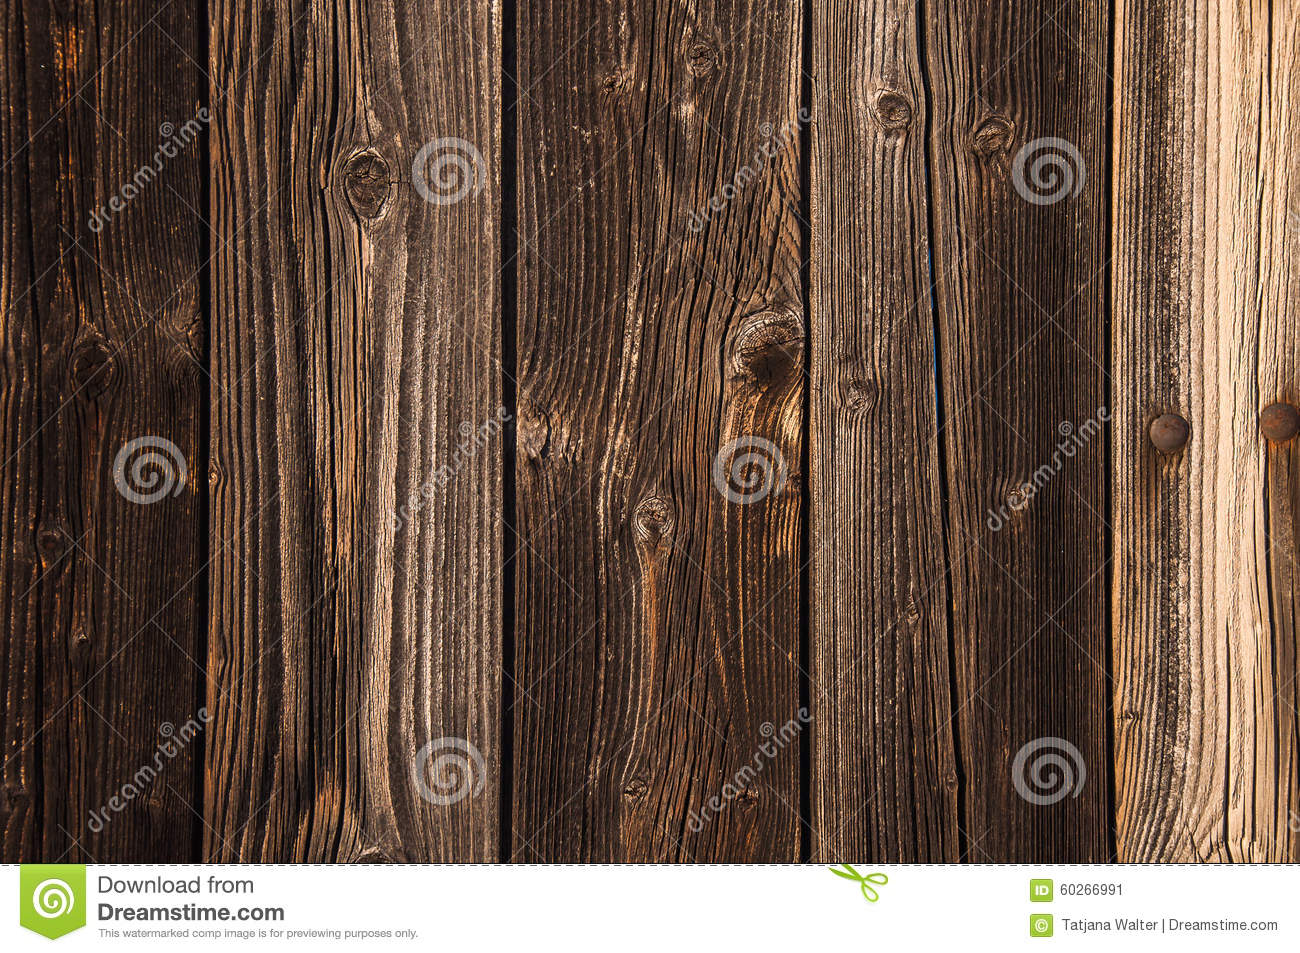 Old barn wood floor background texture stock image for Old barn wood floors